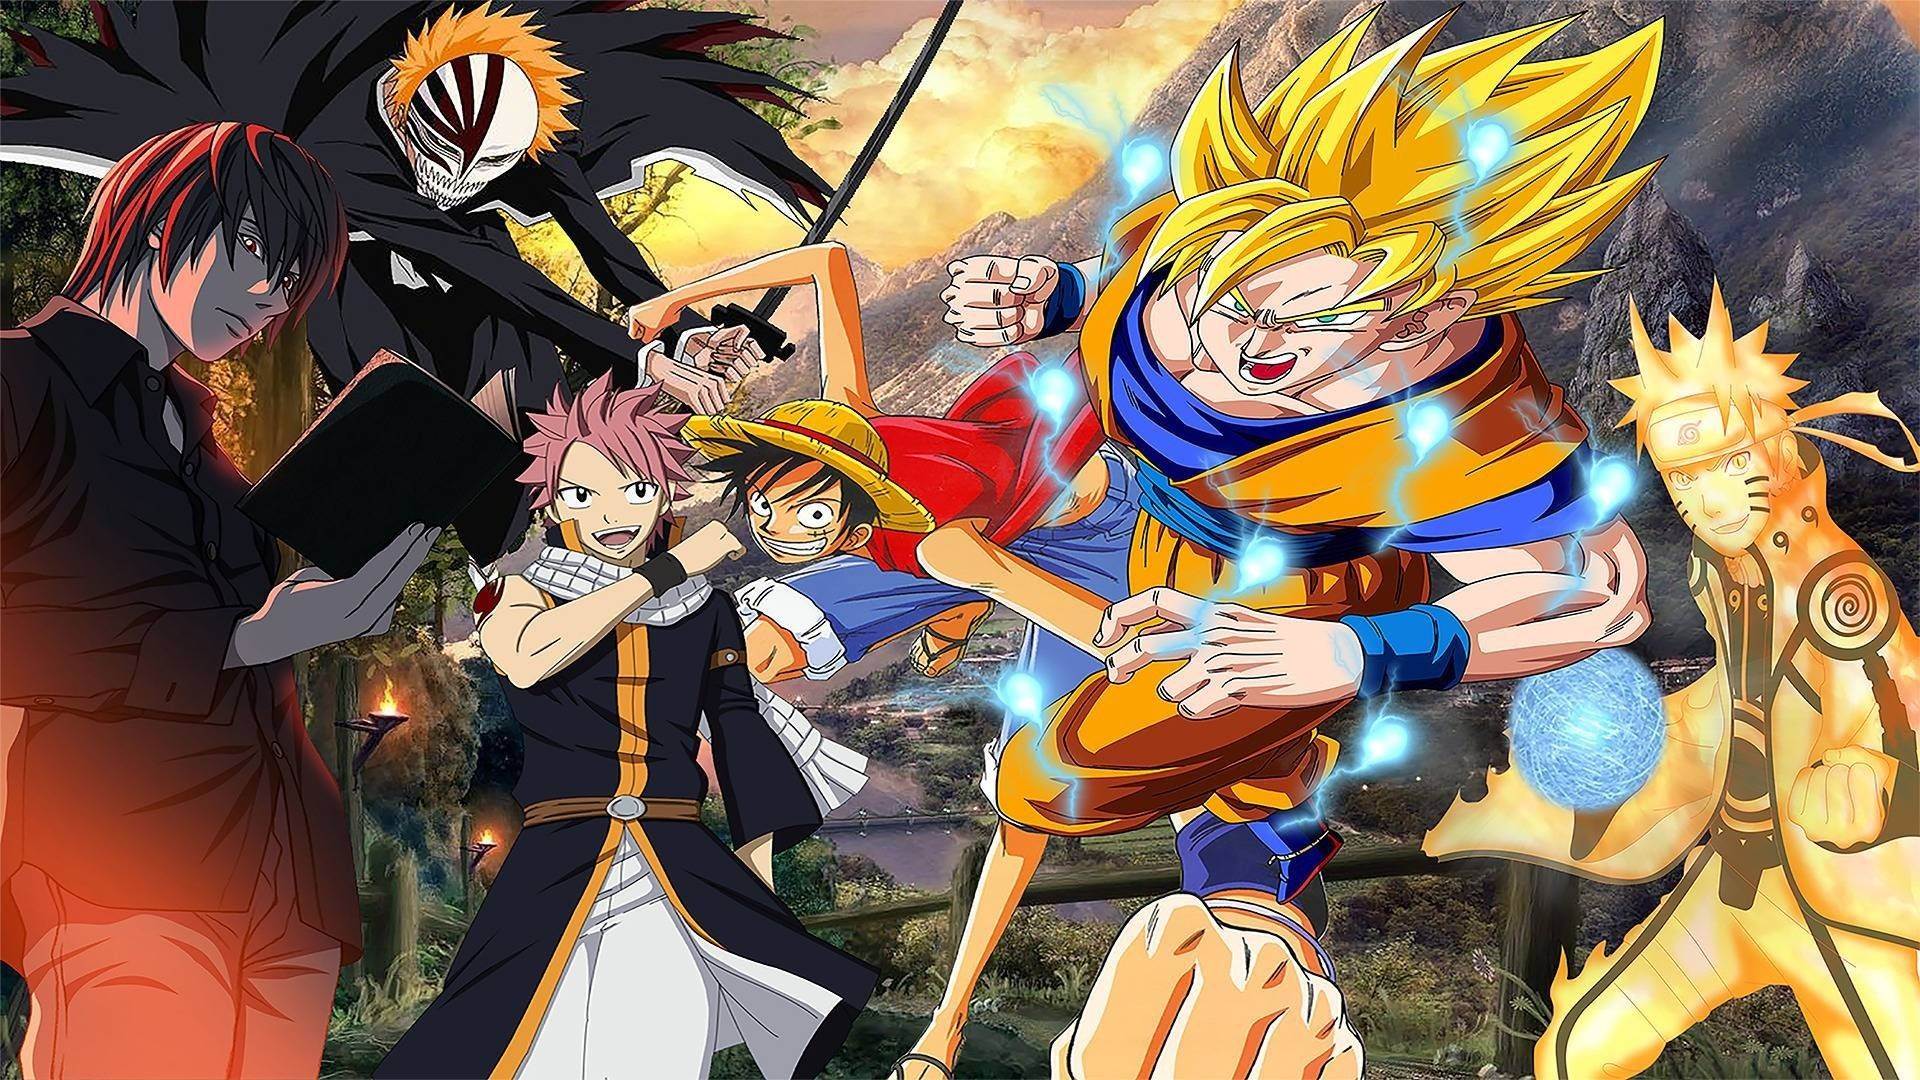 Anime Collage DBZ One Piece Naruto Wallpapers - Wallpaper Cave